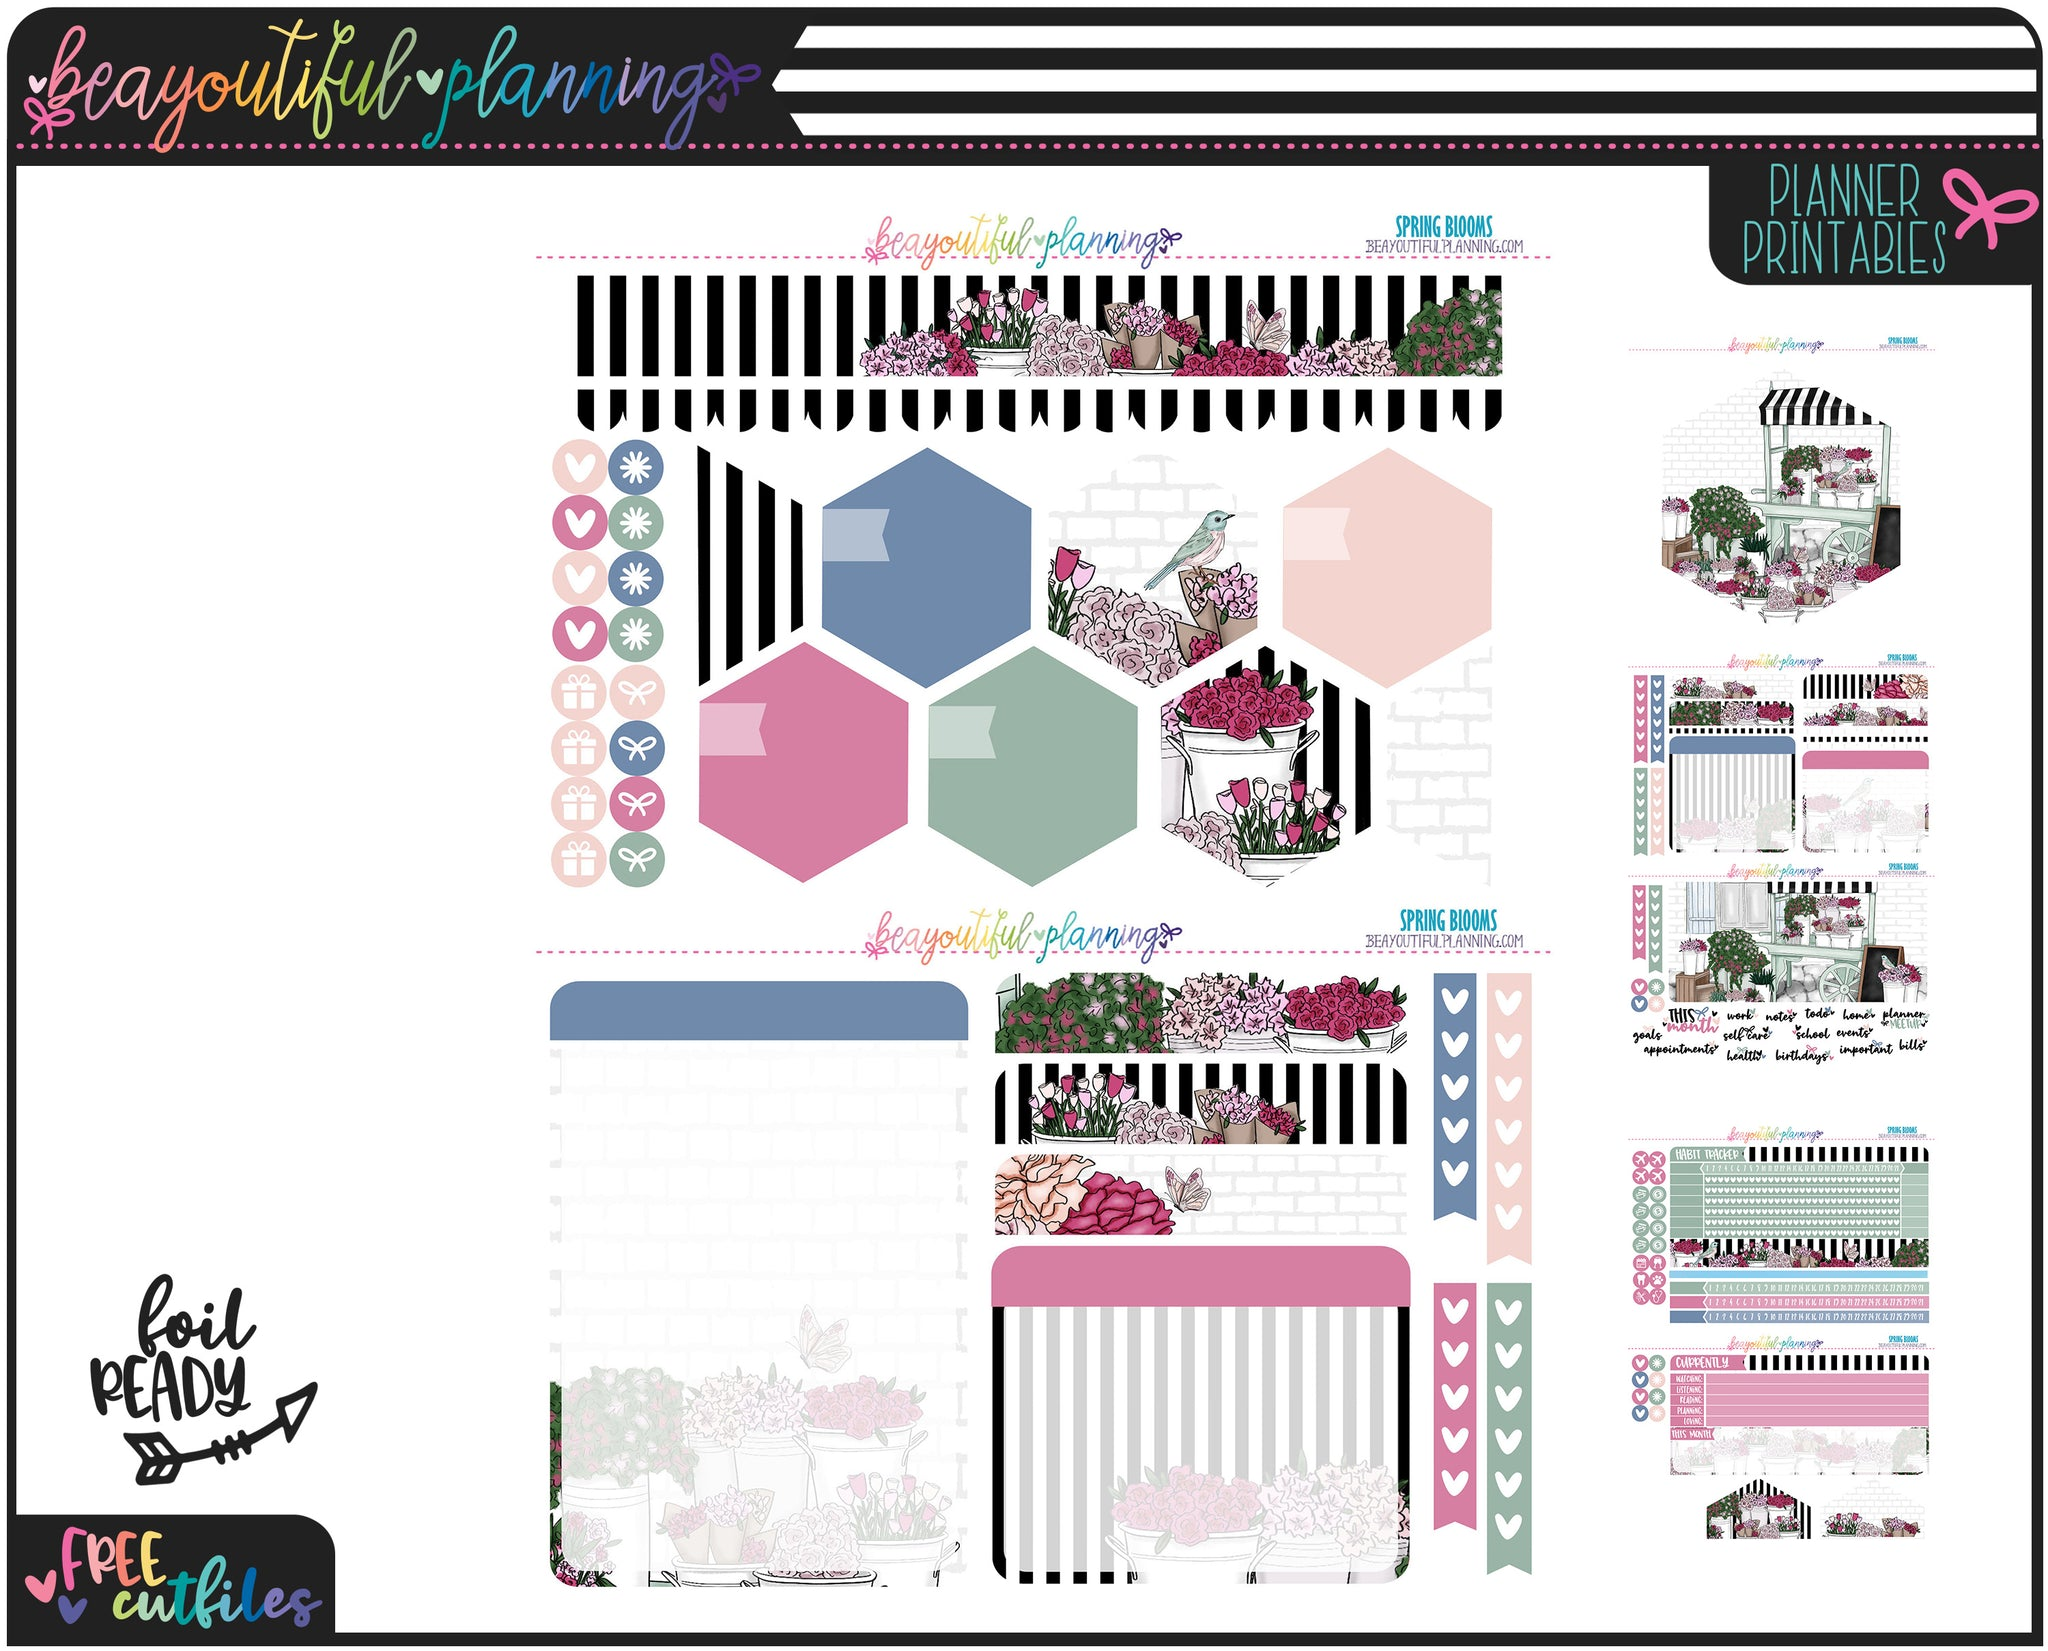 Spring Blooms Notes Page Printable